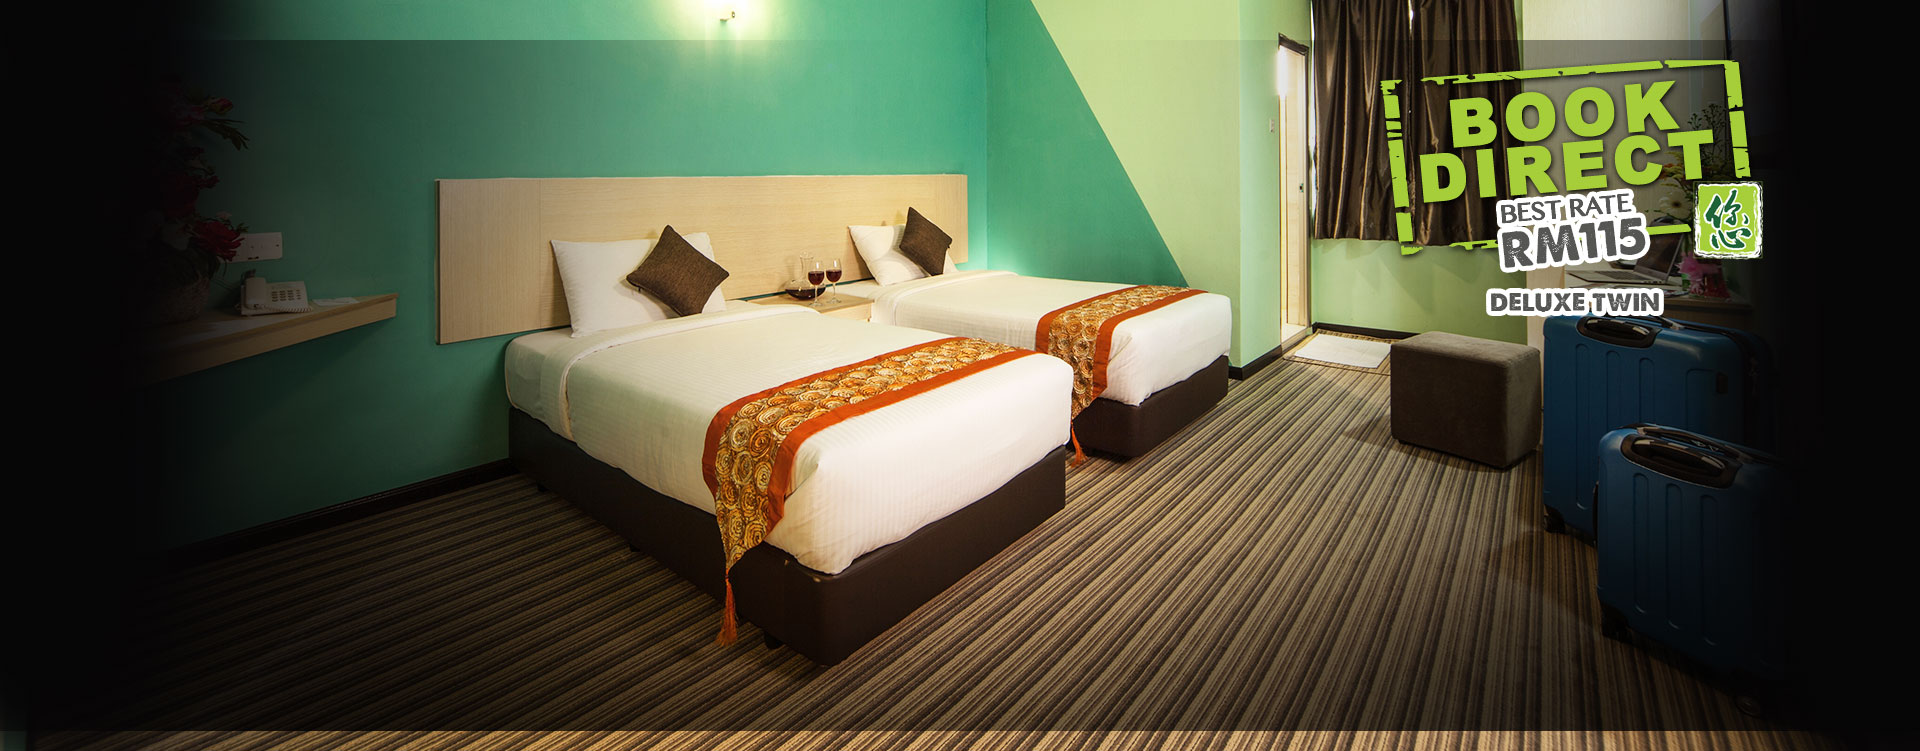 Thy Executive Hotel Deluxe Twin Room at RM115